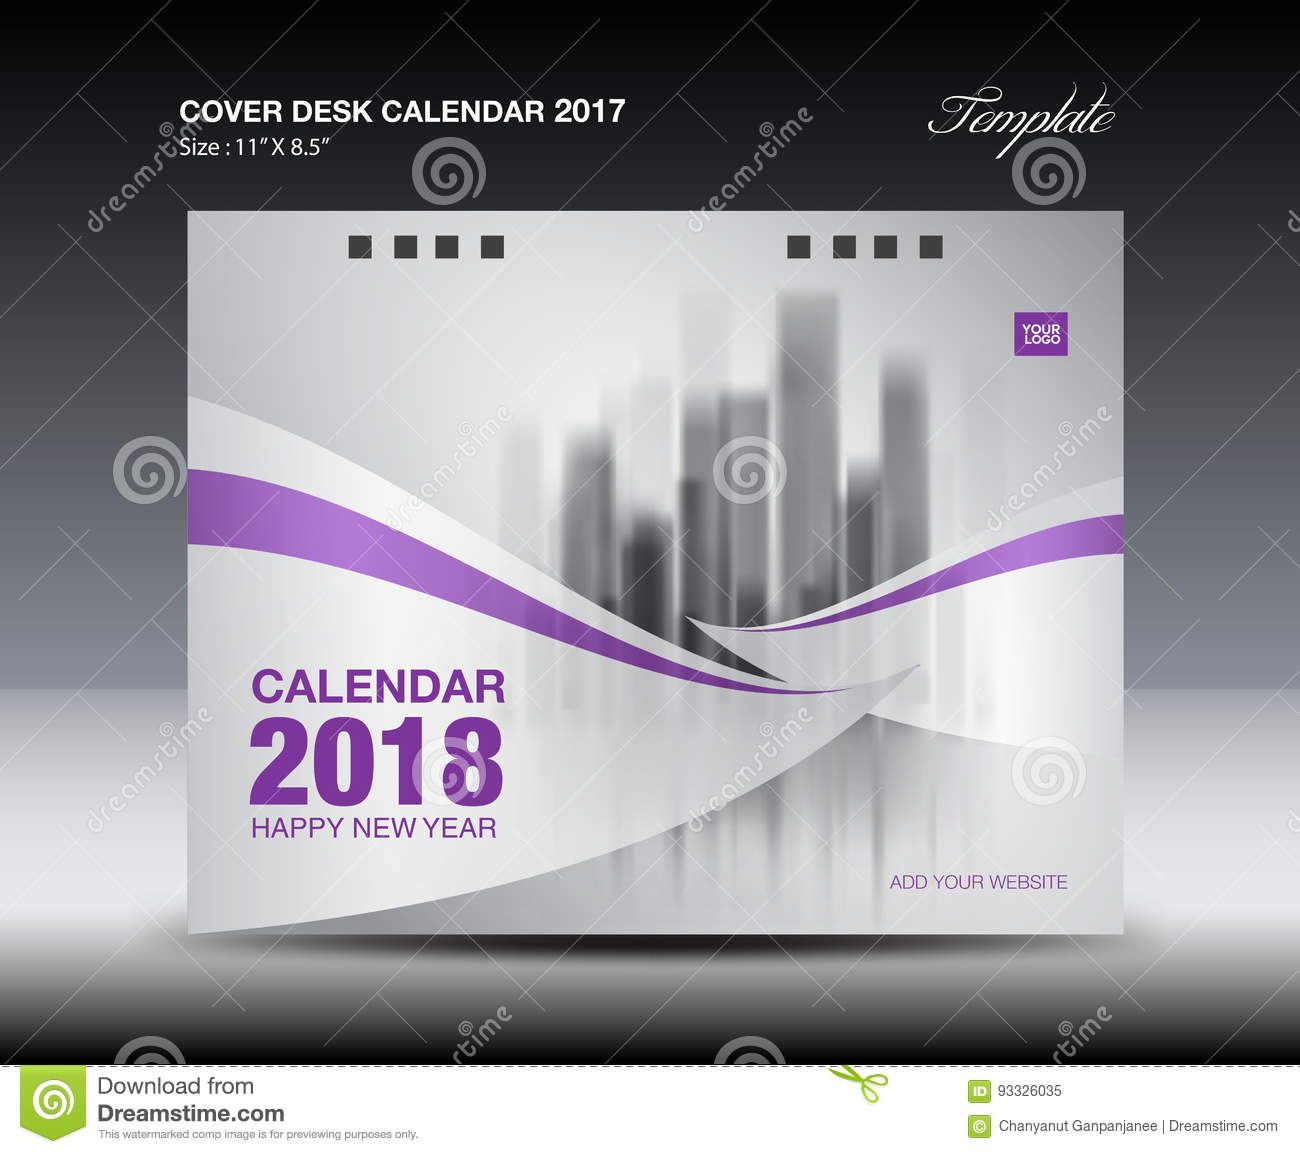 Calendar Cover Page Design : Purple cover desk calendar design flyer template